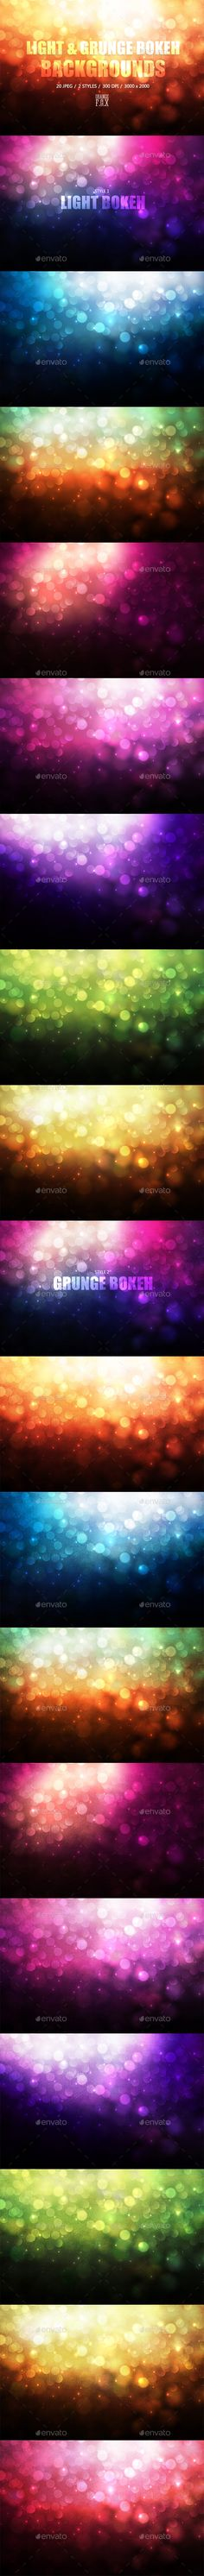 20 Grunge & Light Bokeh Backgrounds - Abstract Backgrounds